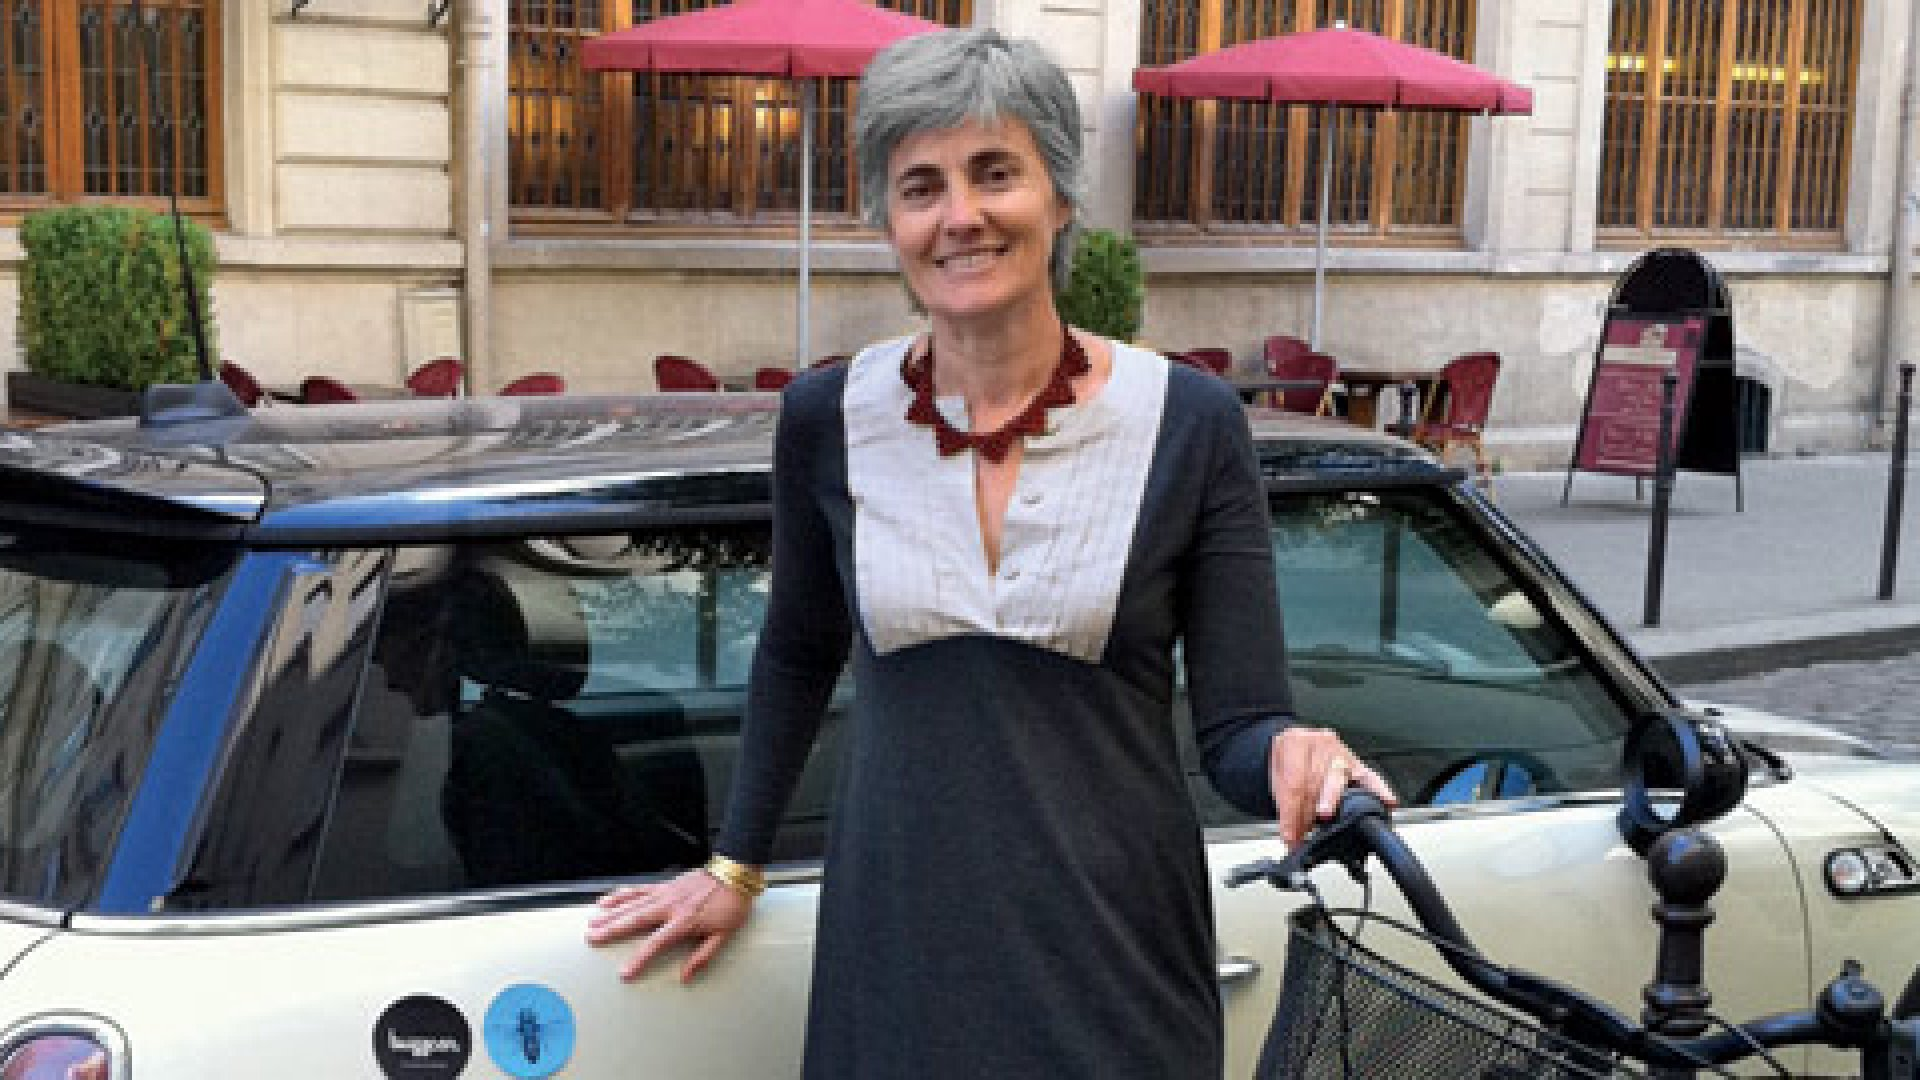 <b>Rolling Again</b> Robin Chase says her Paris-based Buzzcar will set the standard for innovative car sharing.